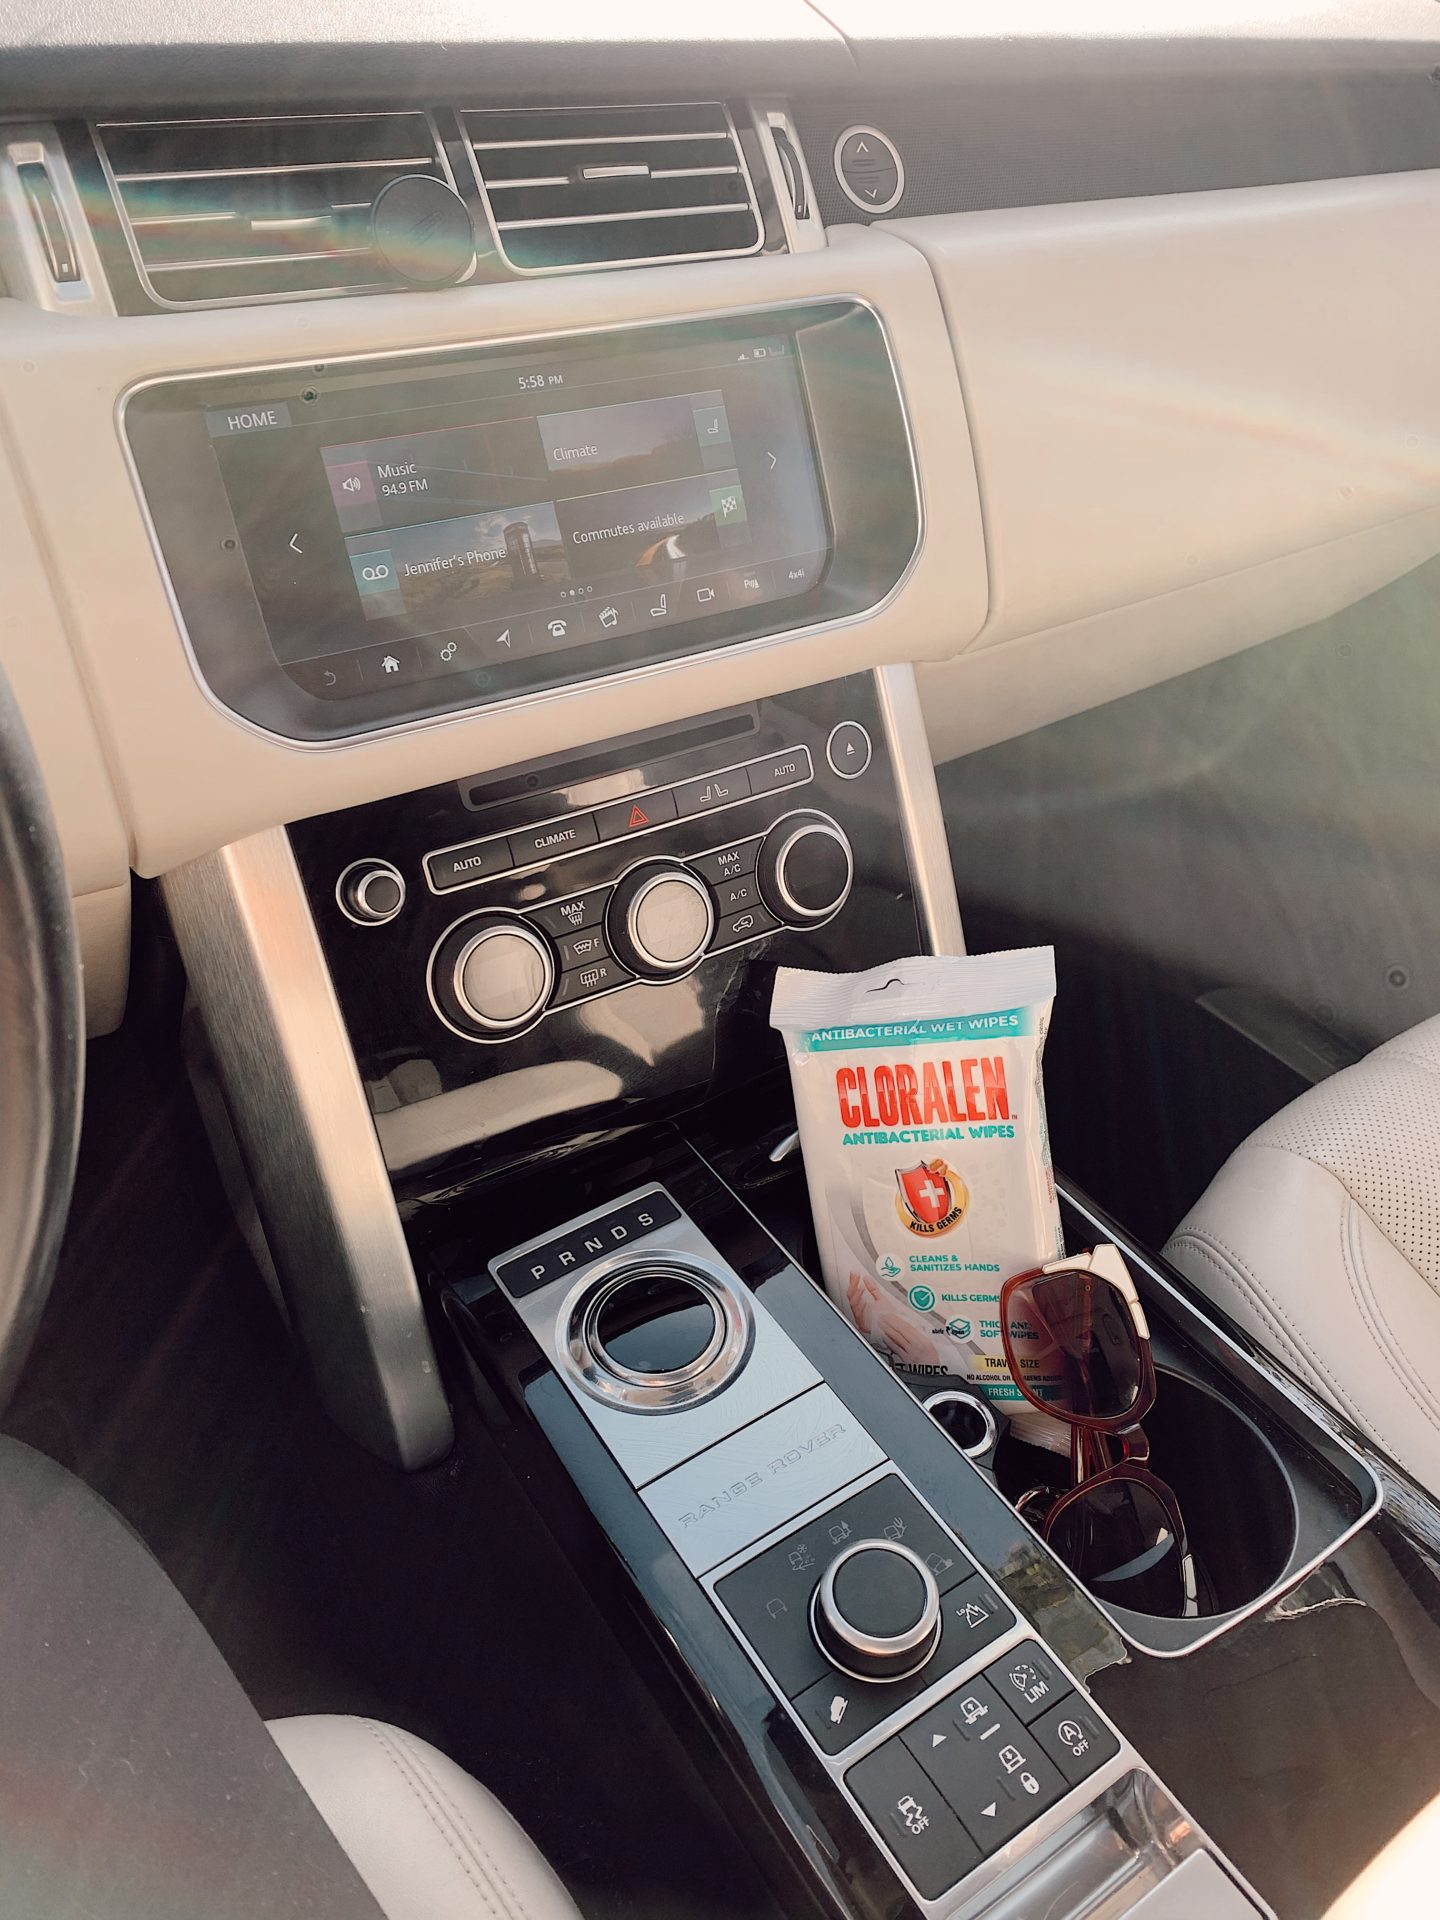 CLORALEN wipes | Spring Cleaning Hacks by popular San Francisco lifestyle blog, Just Add Glam: image of Cloralen wipes in a car.